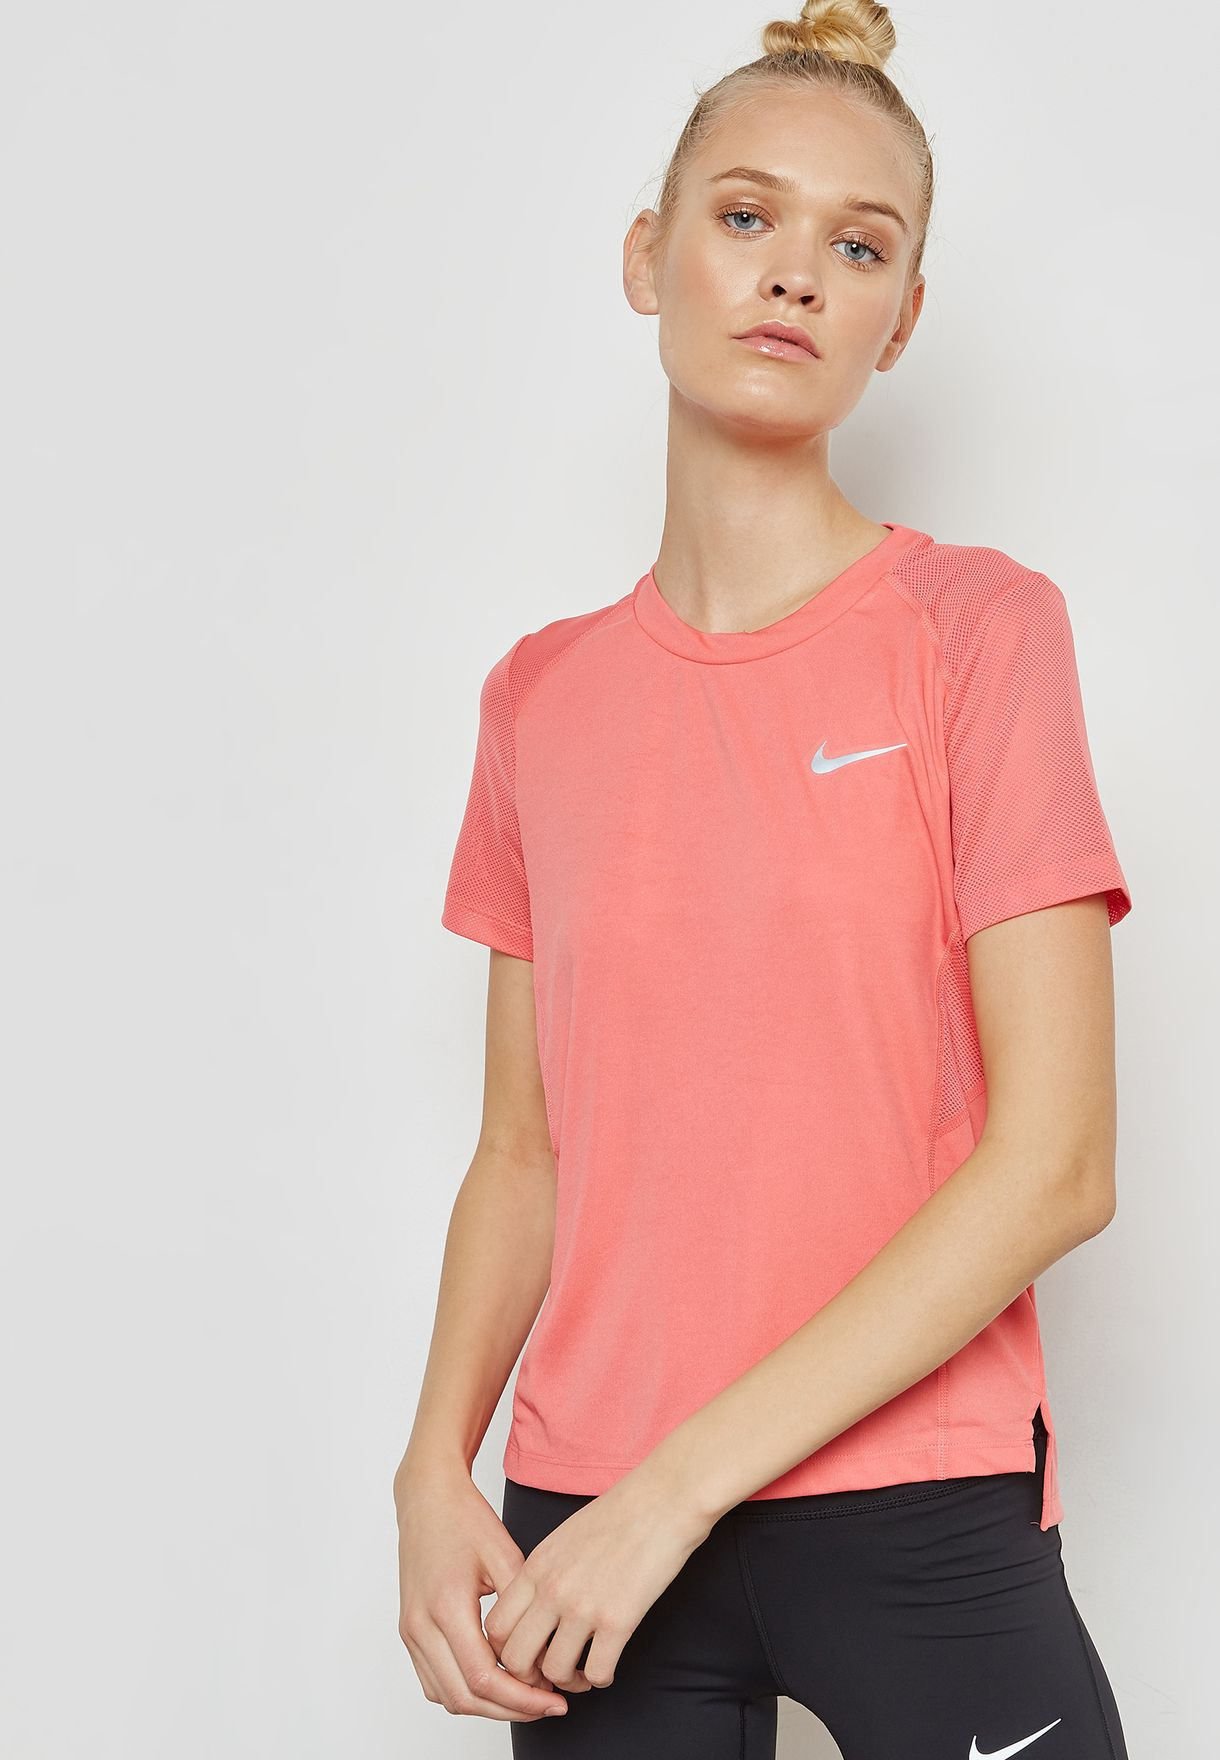 98fabf1332422 Shop Nike pink Dri-FIT Miler T-Shirt 932499-823 for Women in ...